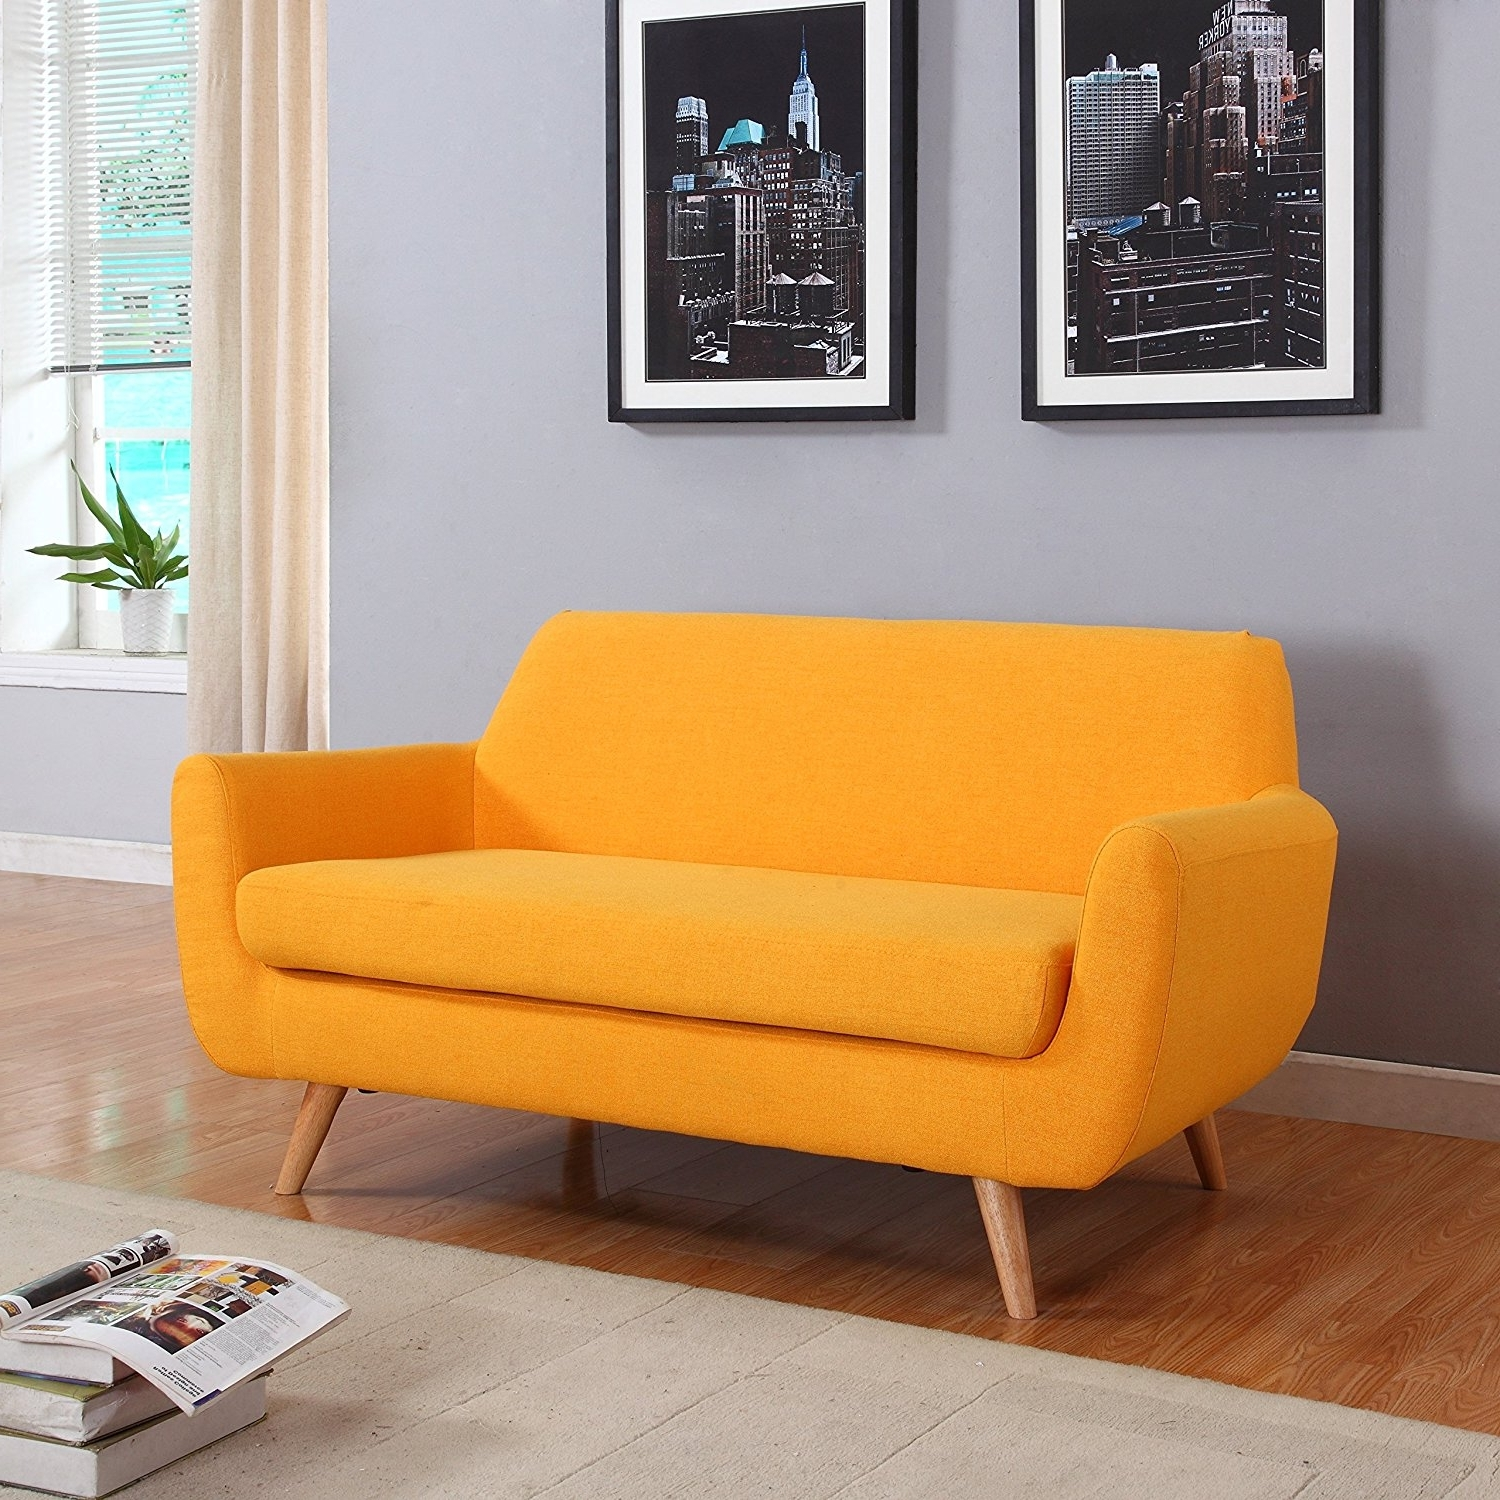 Well Known Furniture : Klaussner Hybrid Sofa Sofa Sale January Klaussner For Kingston Sectional Sofas (View 12 of 15)